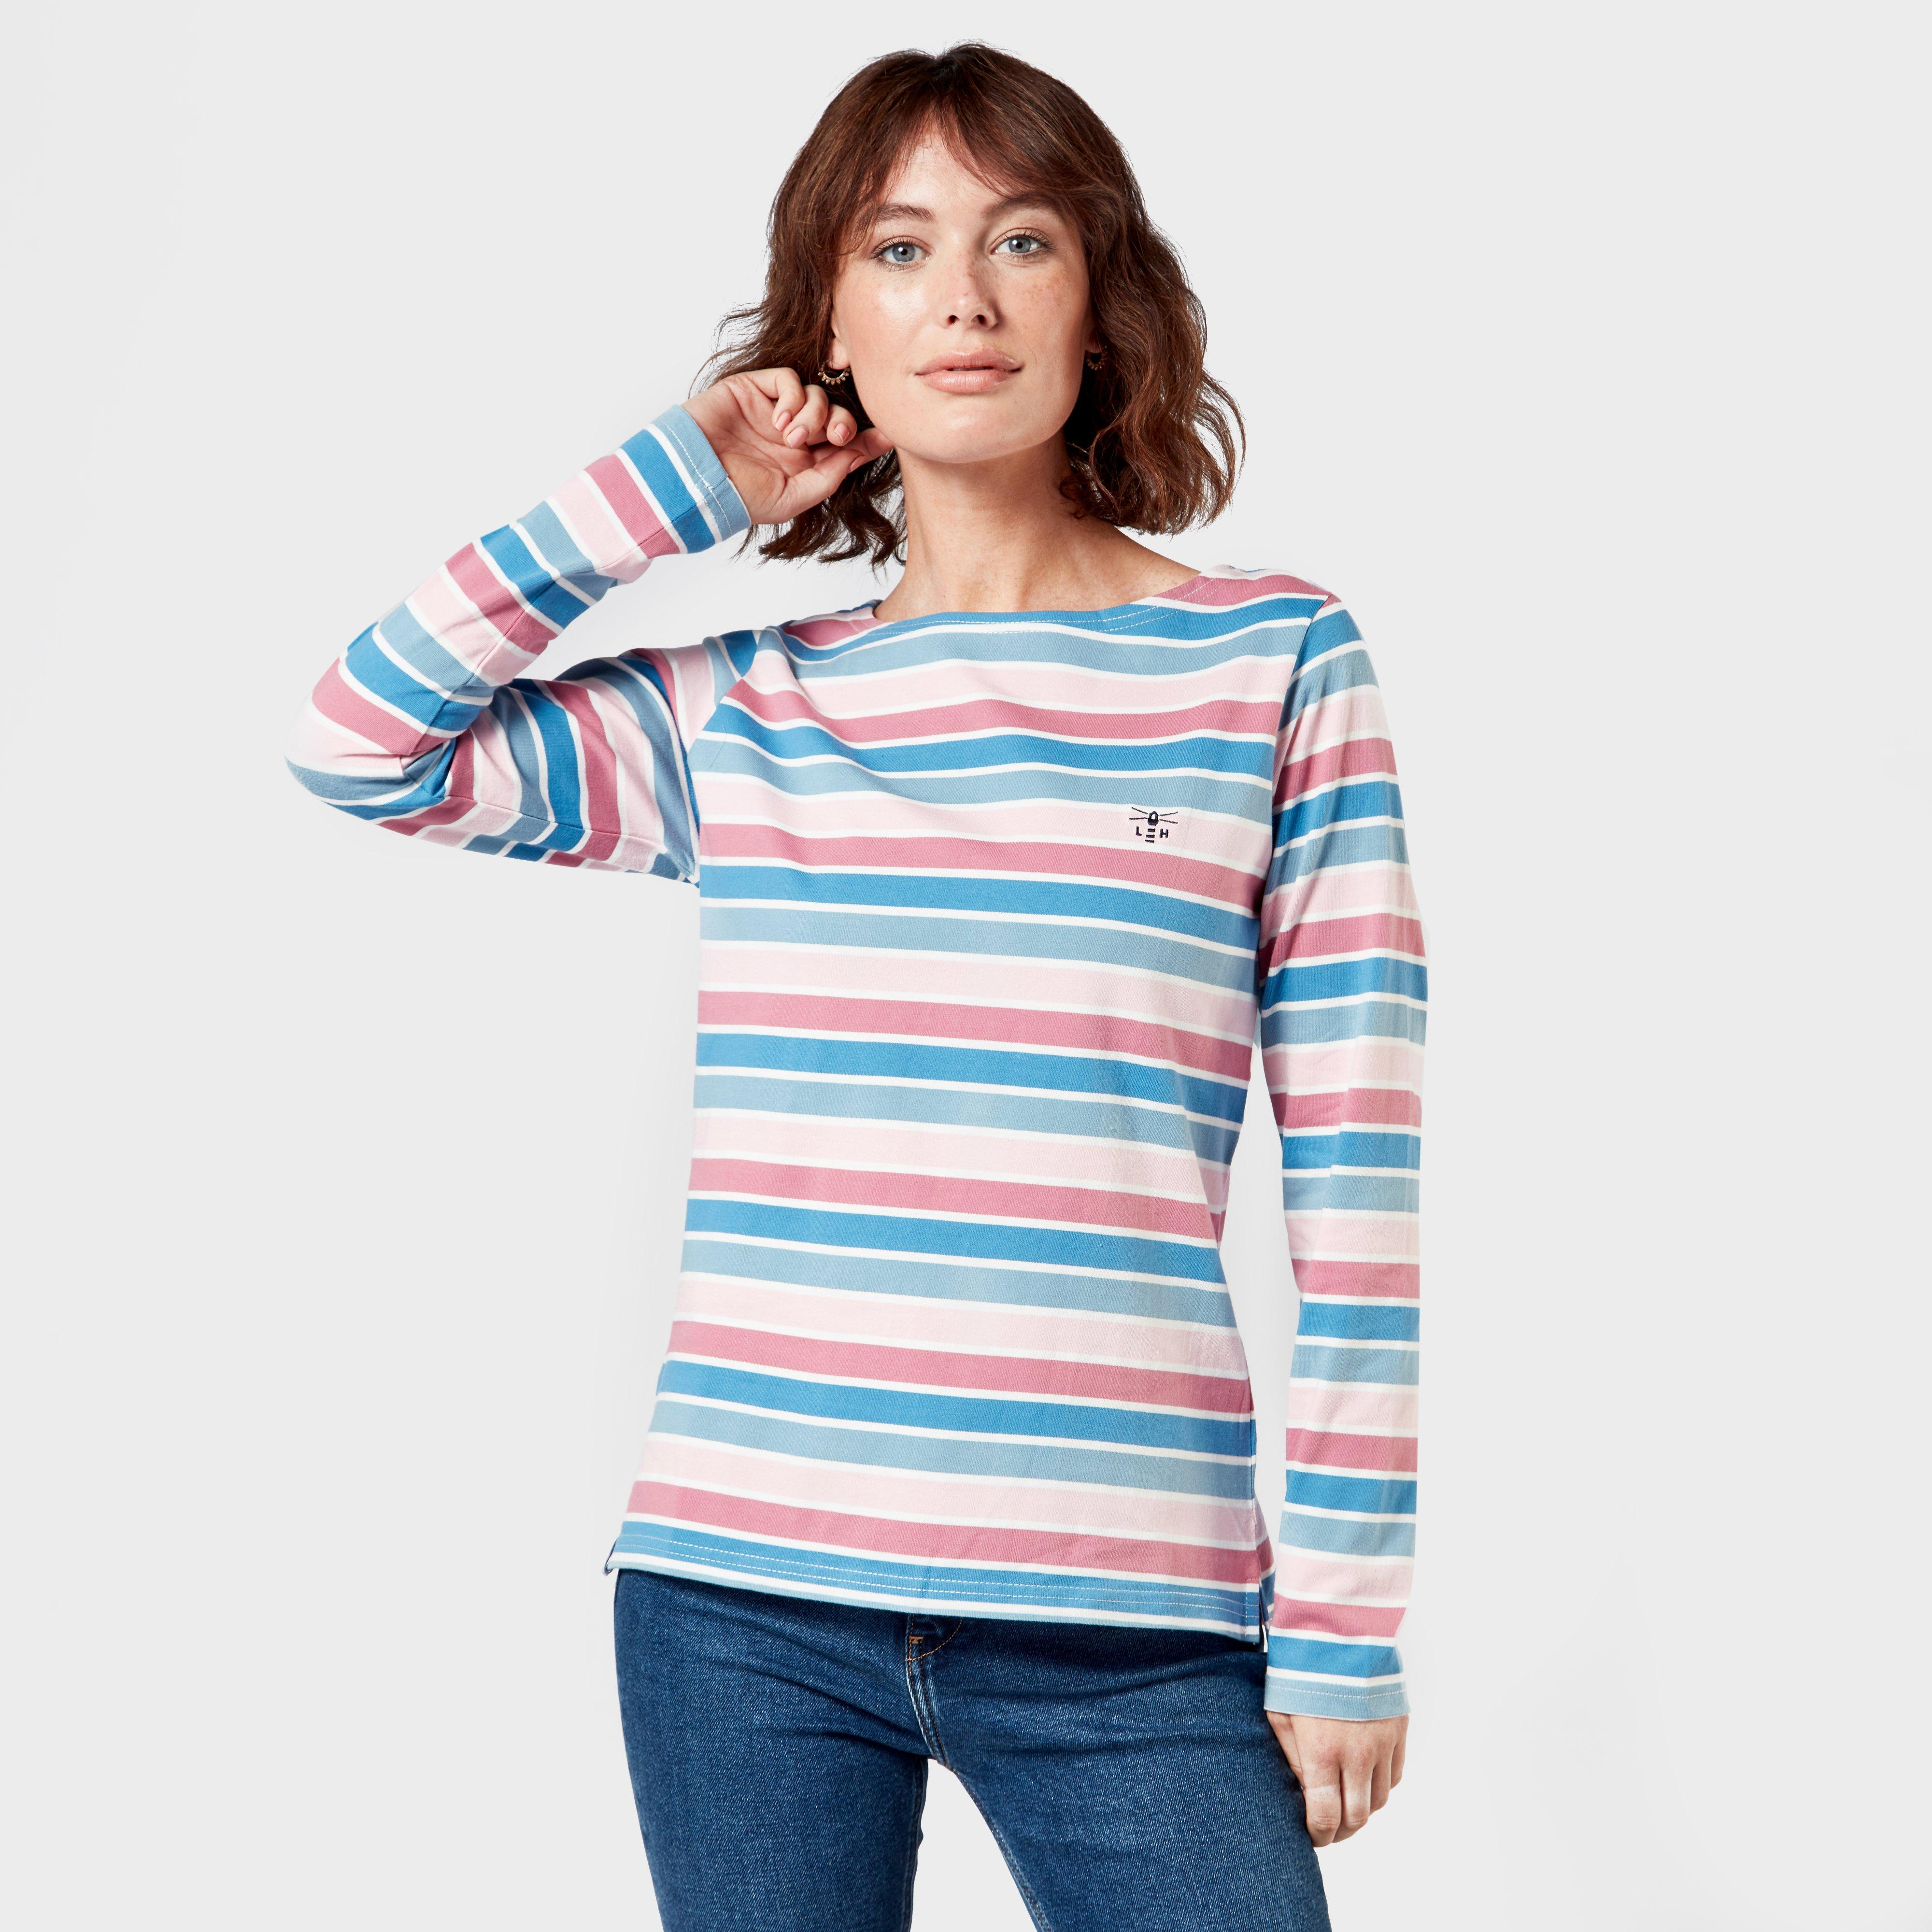 Lighthouse Women's Causeway Striped Top, Multi